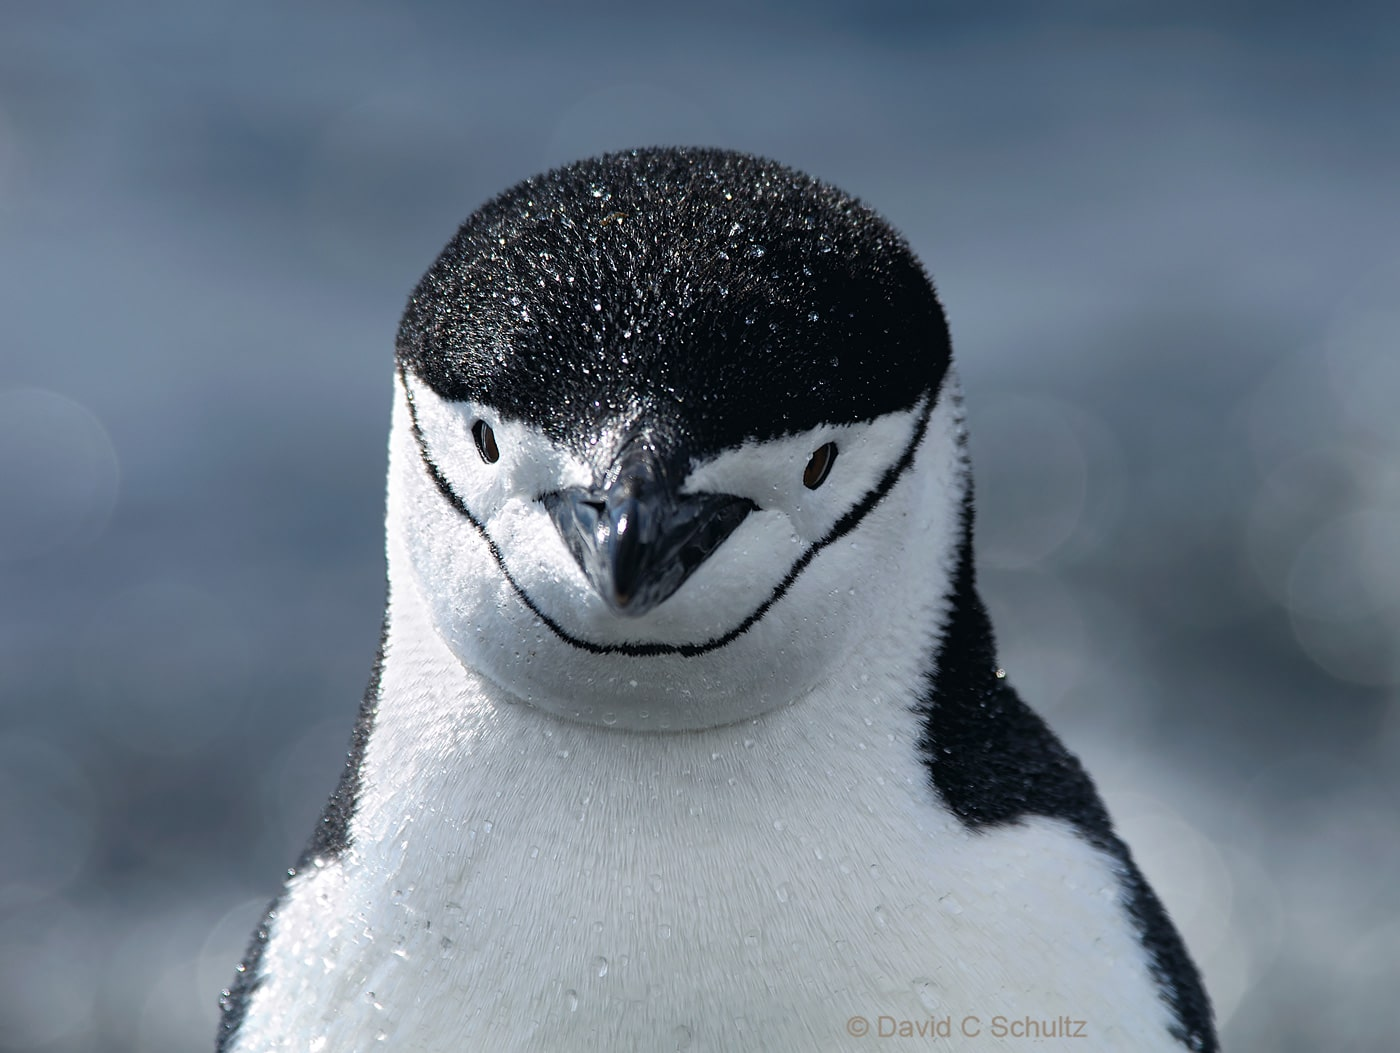 Chinstrap penguin in Antarctica - Image #163-618